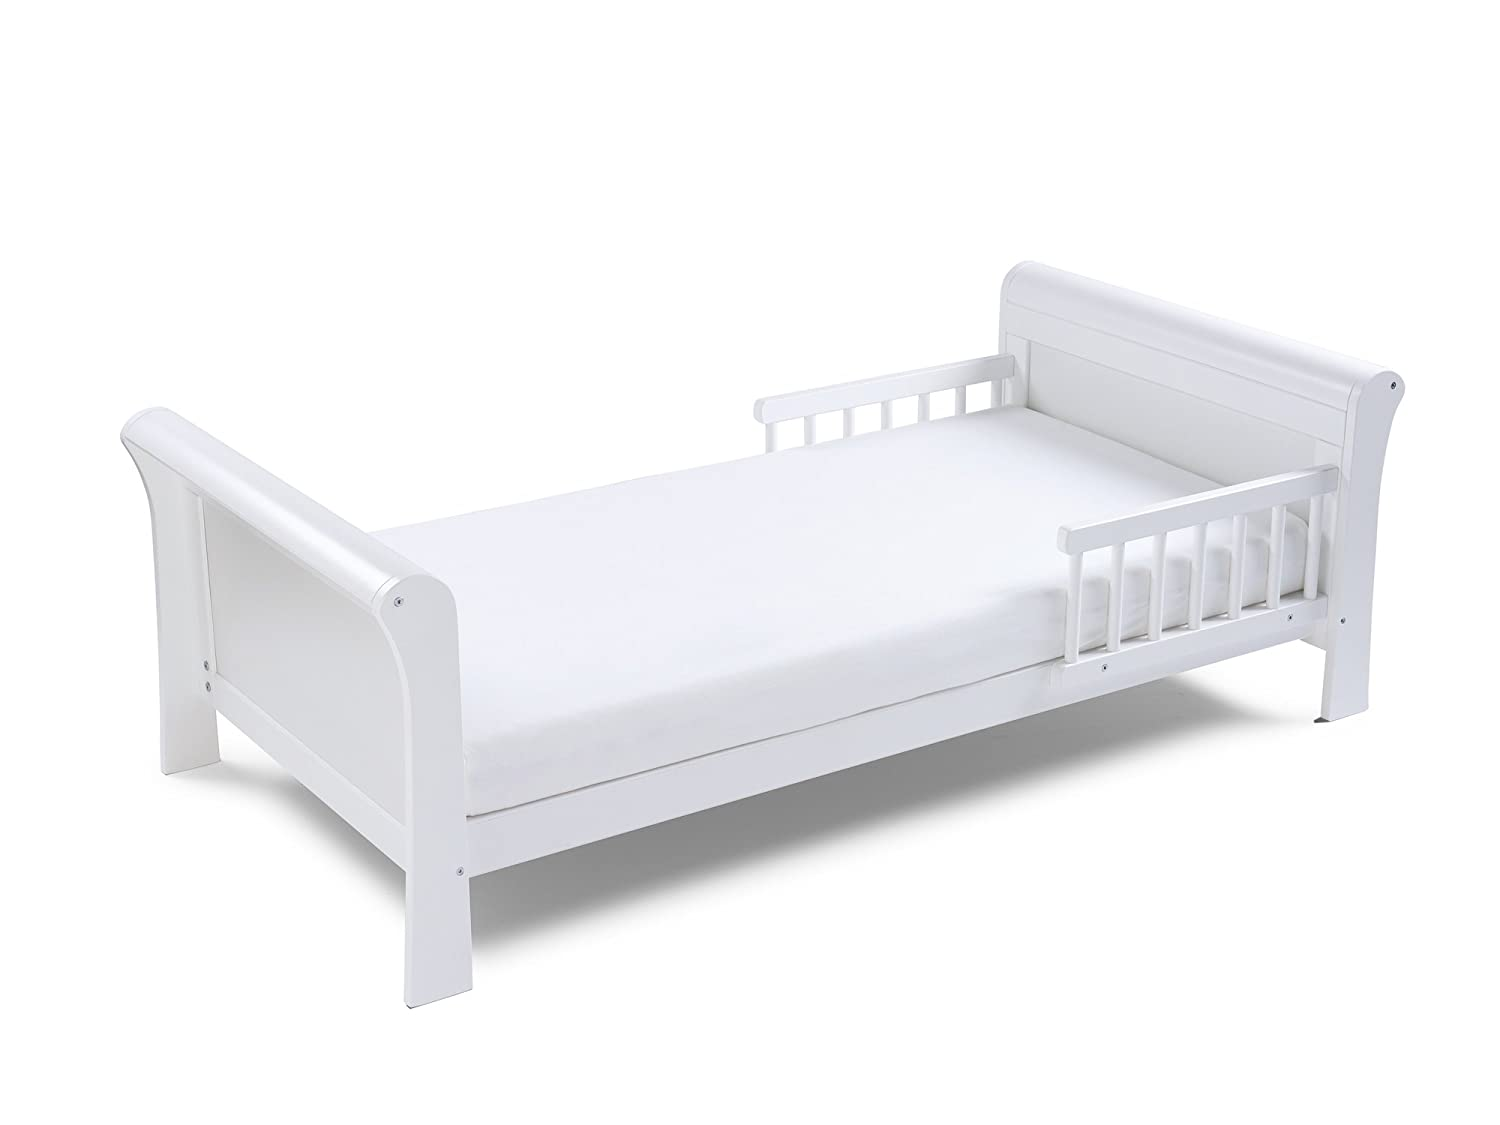 Poppys Playground Grace Sleigh-White Junior Toddler Bed & Deluxe Sprung Mattress Poppy's Playground